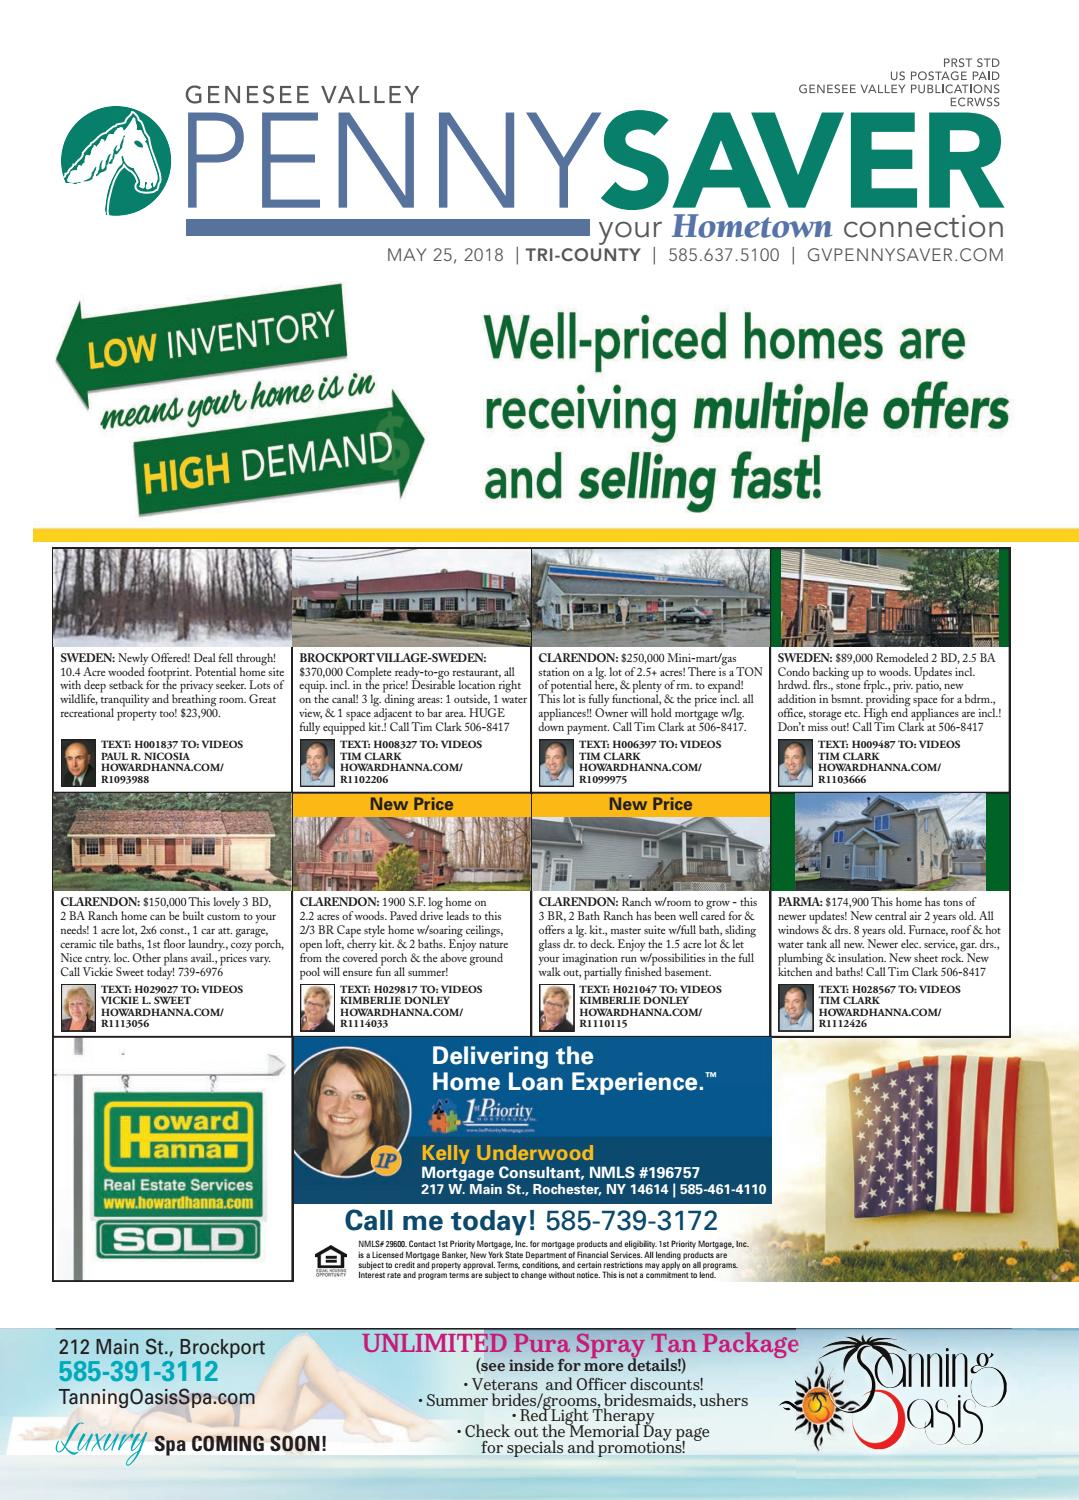 Tri-County Edition - The Genesee Valley Penny Saver 5/25/18